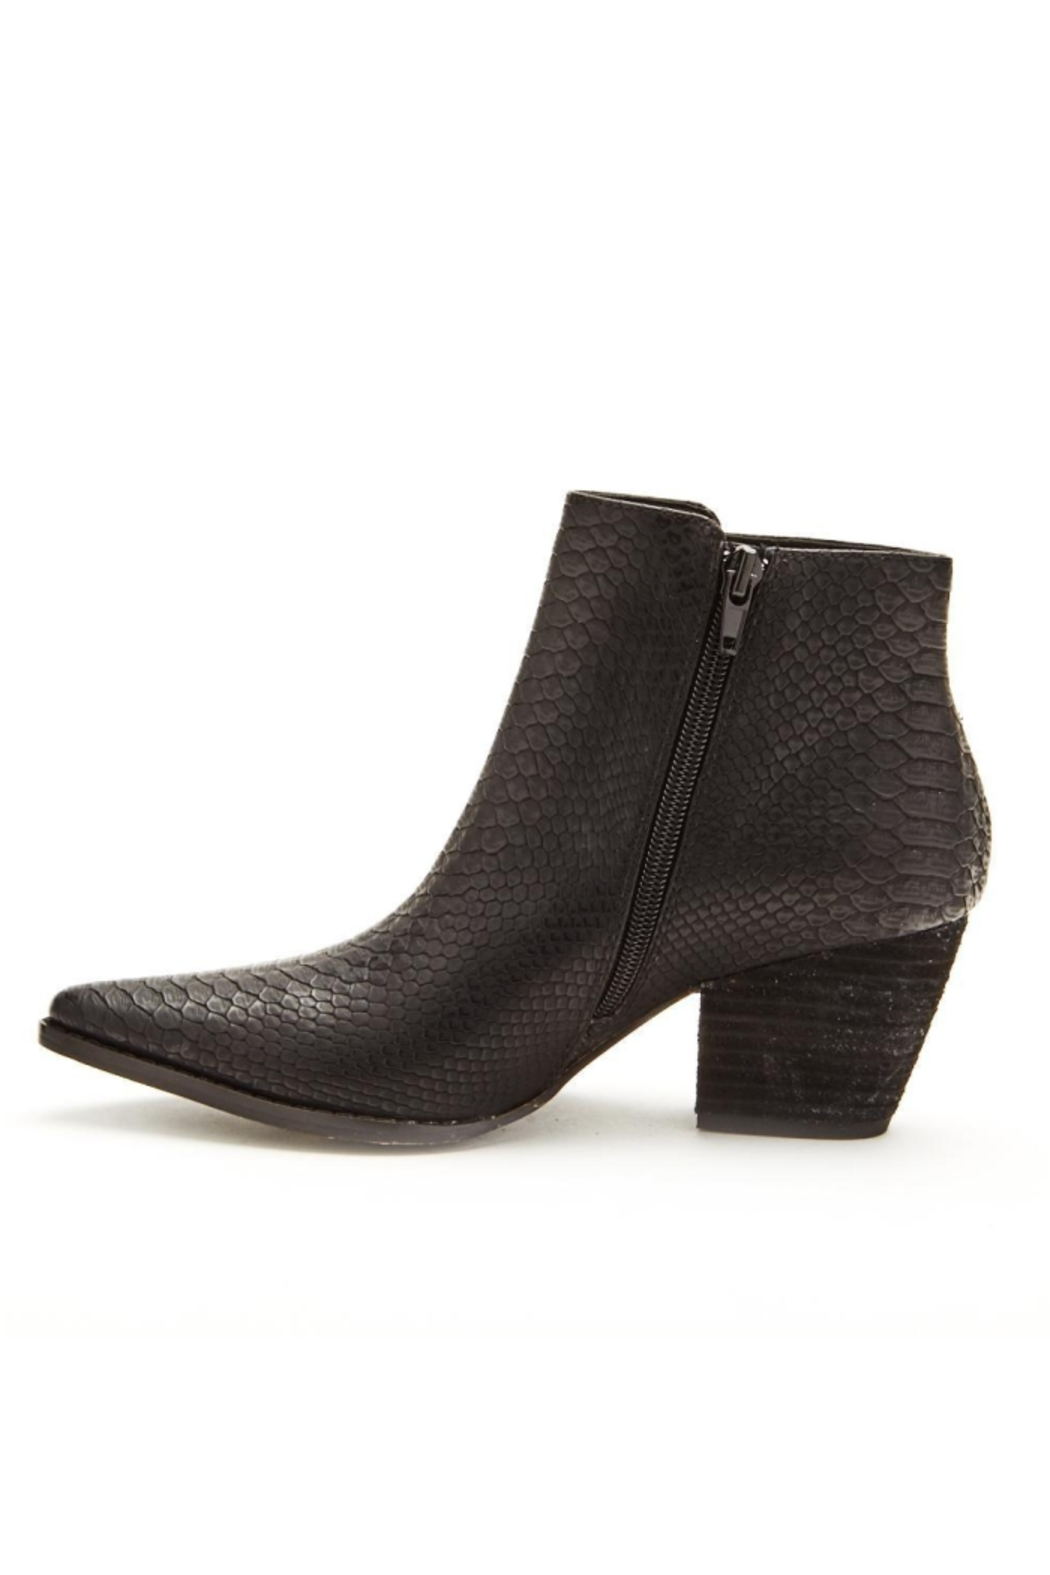 Matisse Go West Croc Pointed Toe Booties - Side Cropped Image